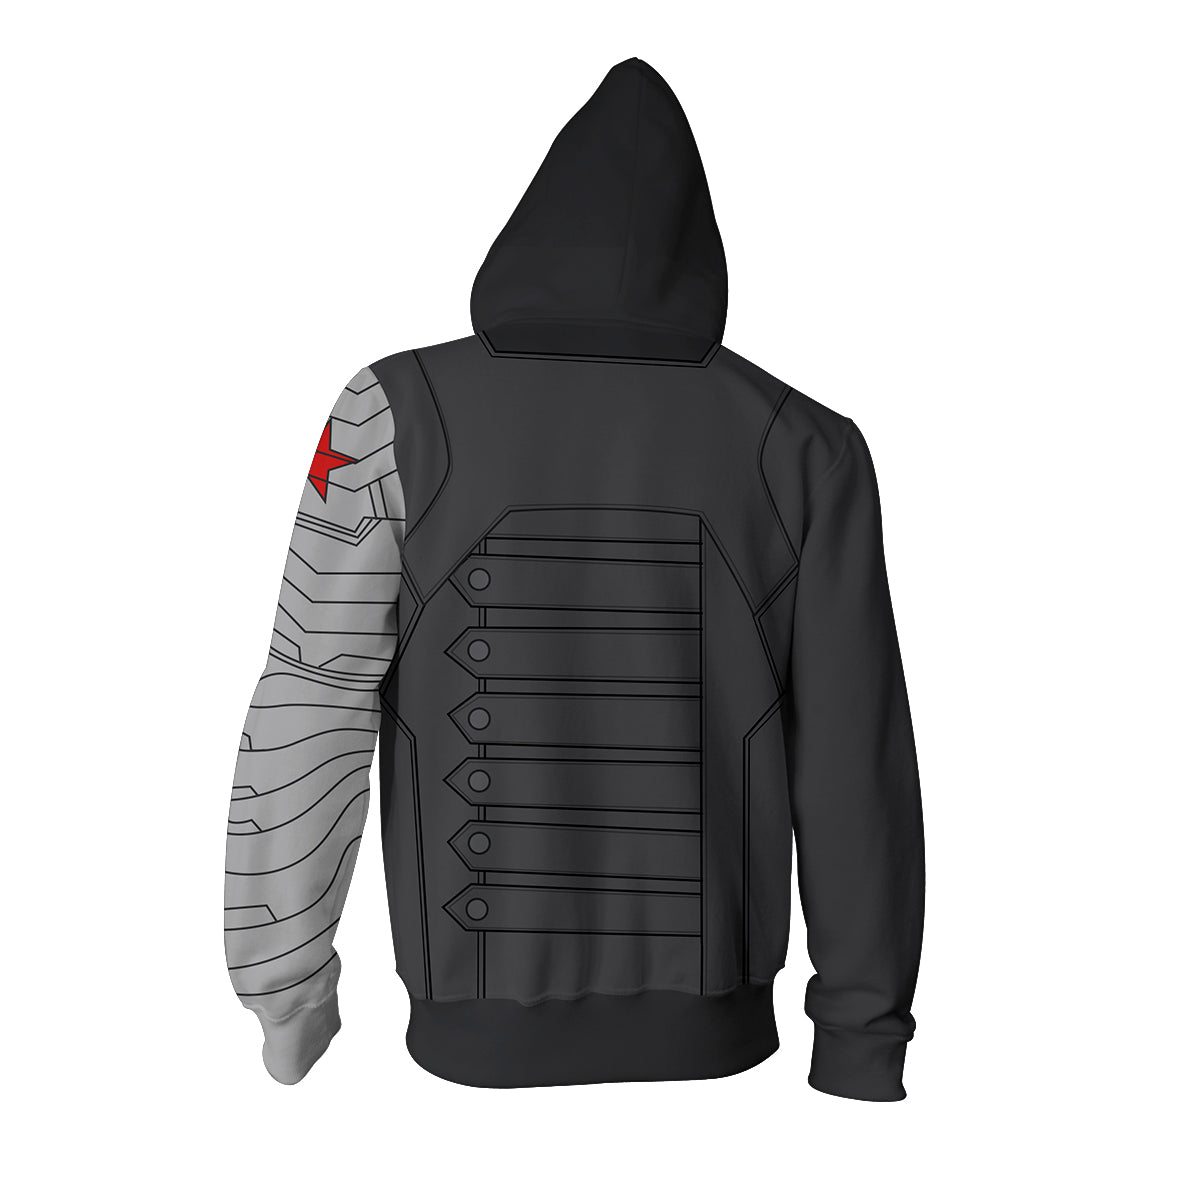 Bucky Winter Soldier Zip Up Hoodie